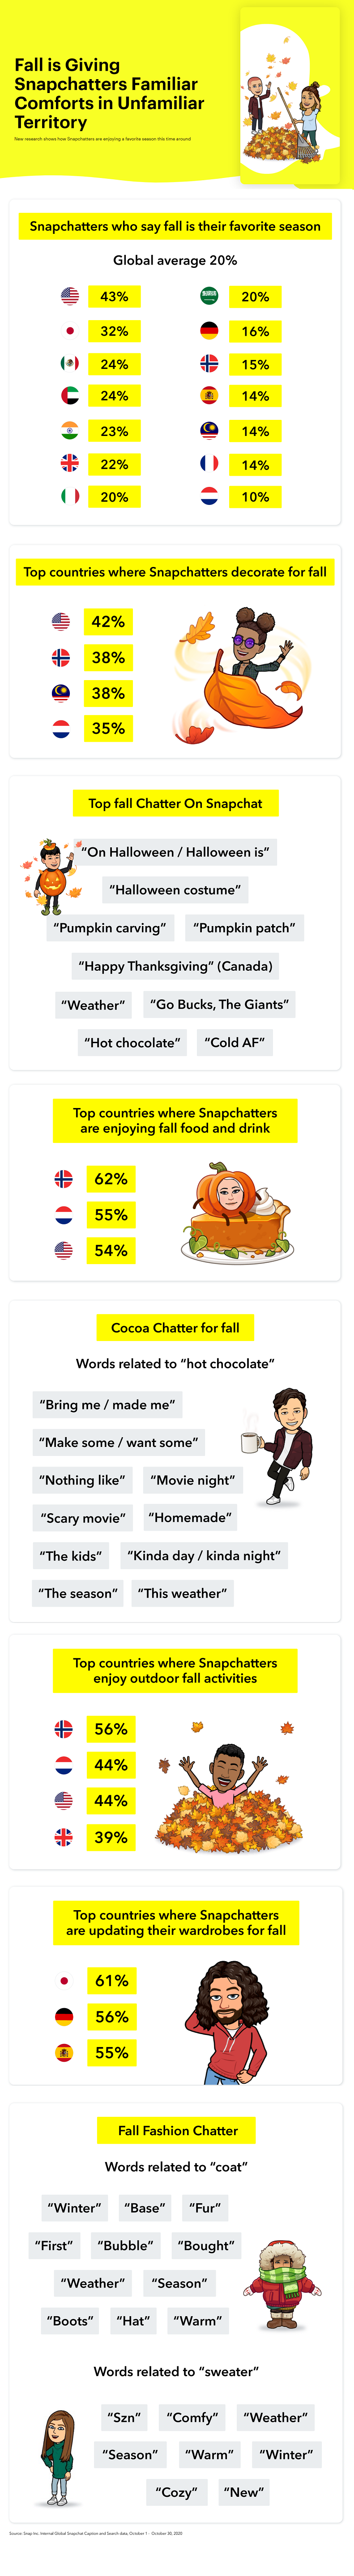 Snapchat fall trends report